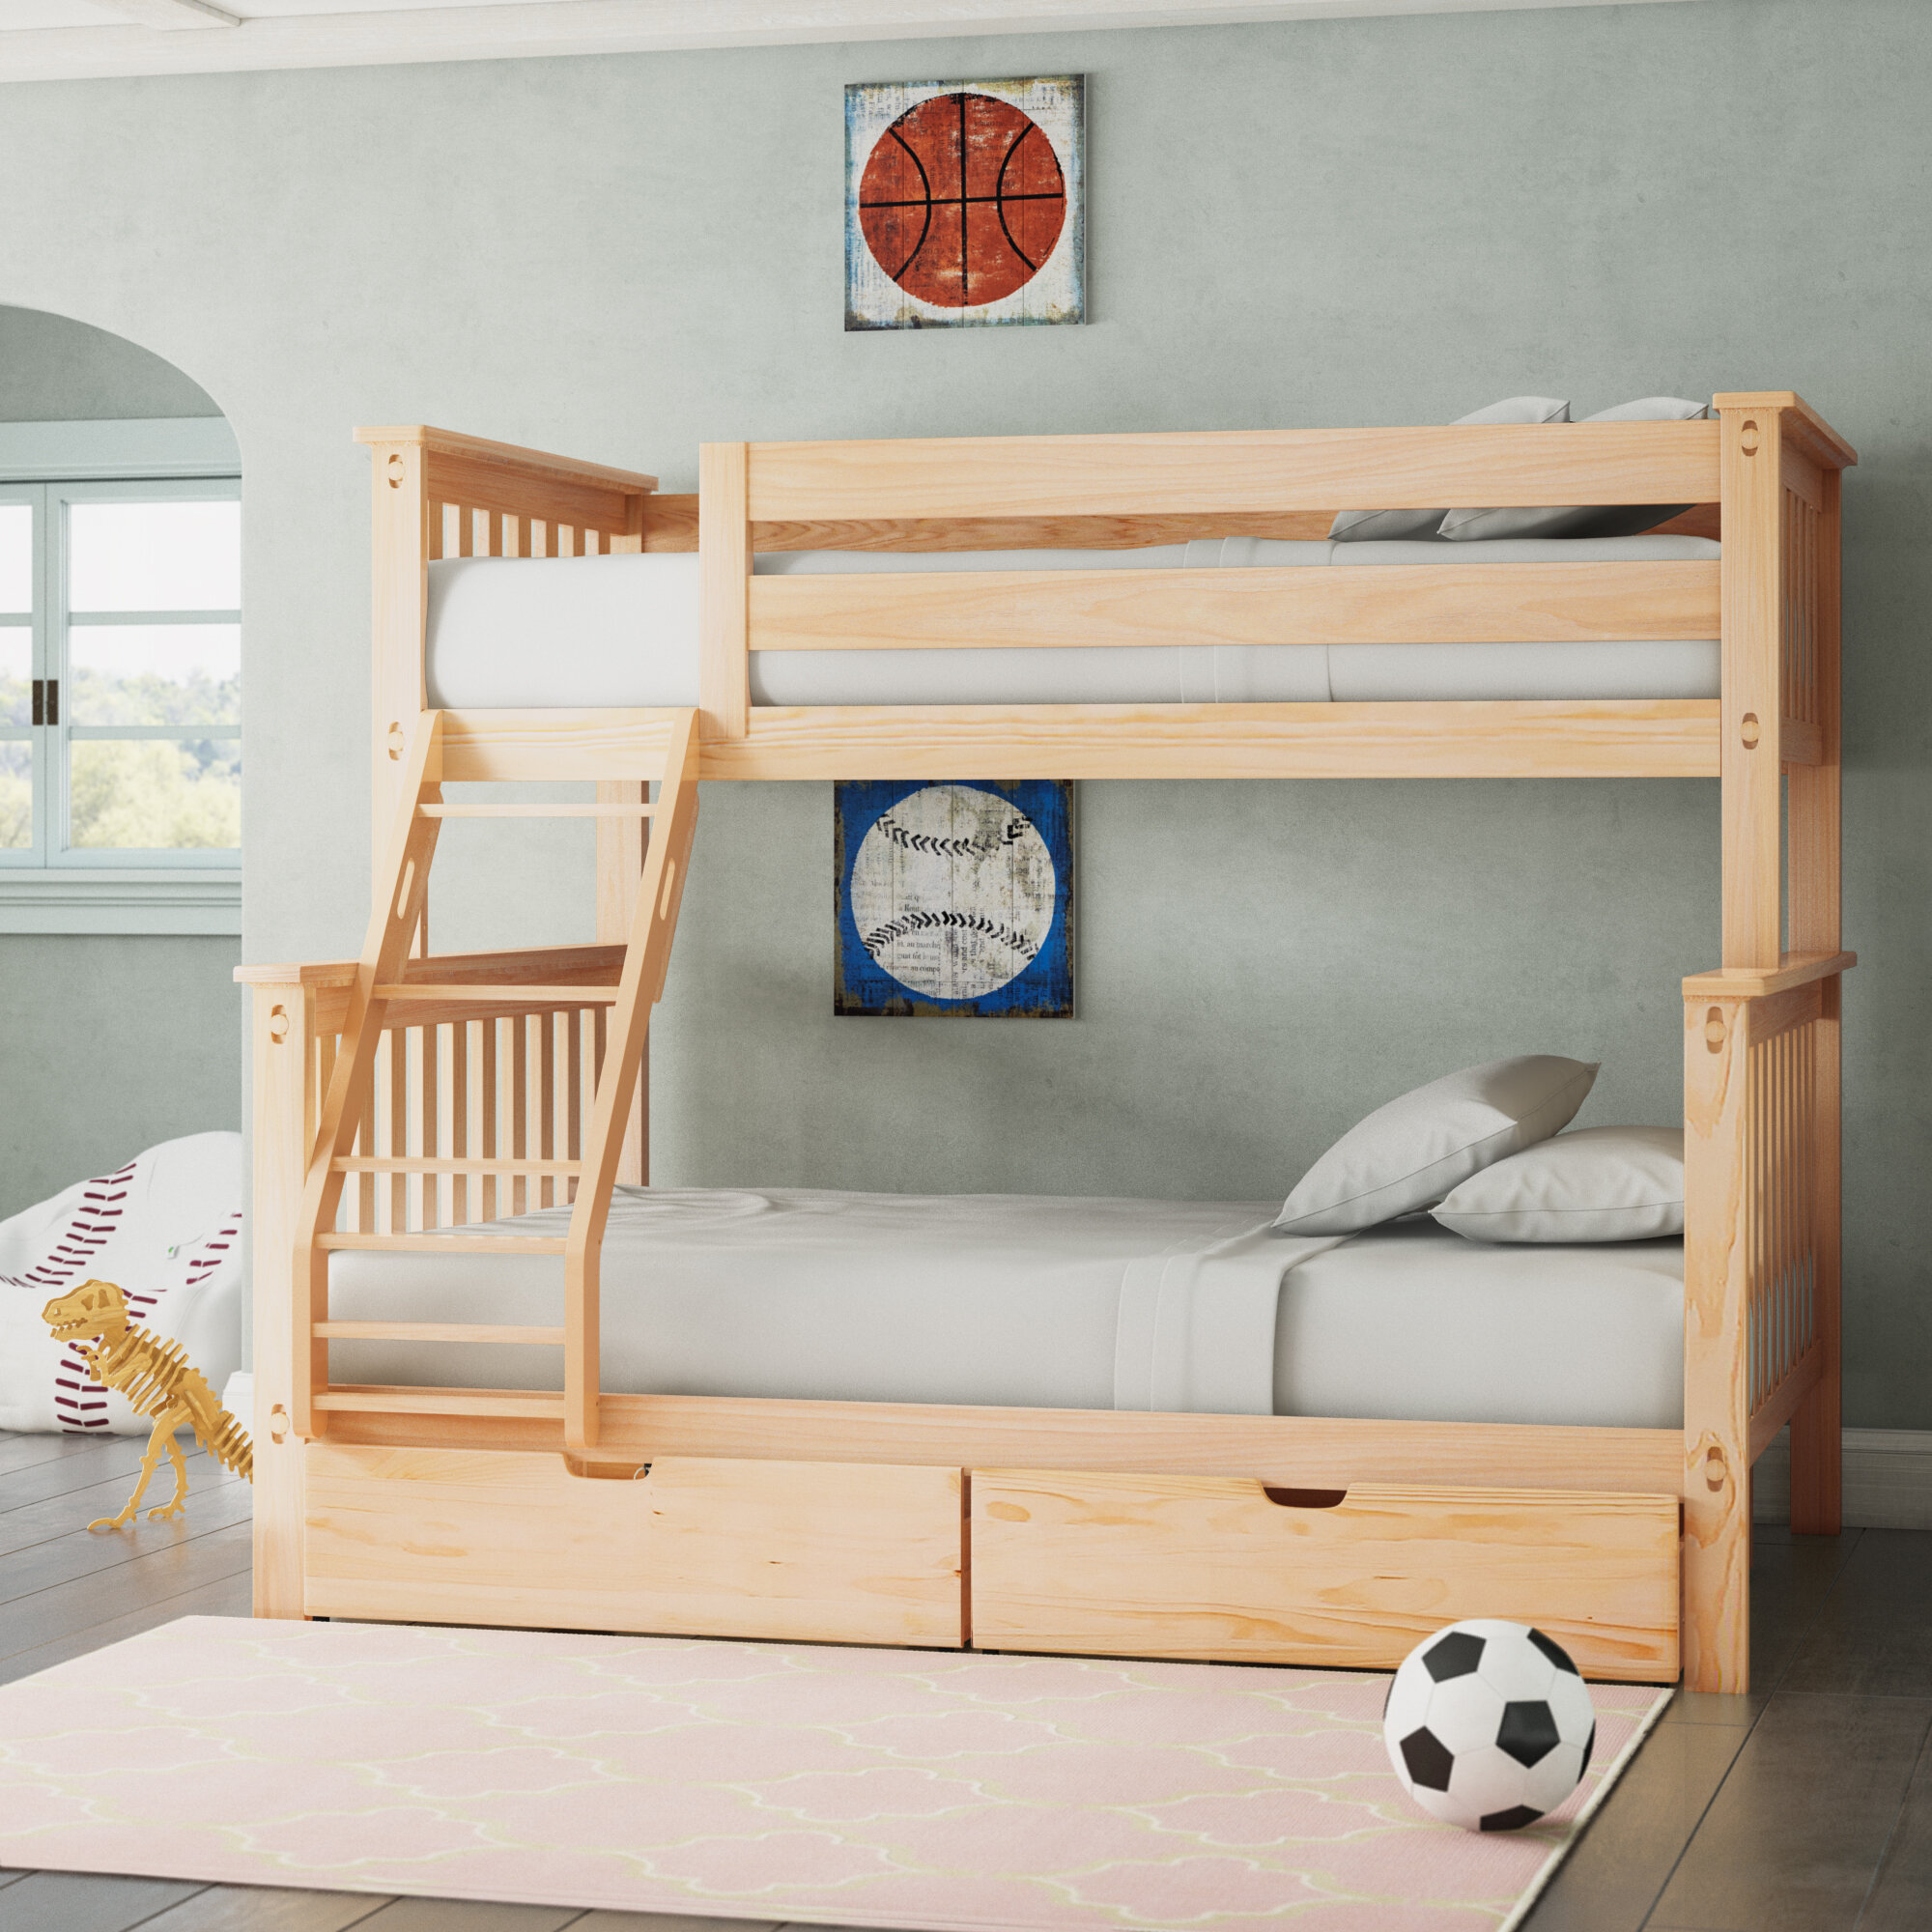 Kids Bunk Beds With Desks Free Shipping Over 35 Wayfair